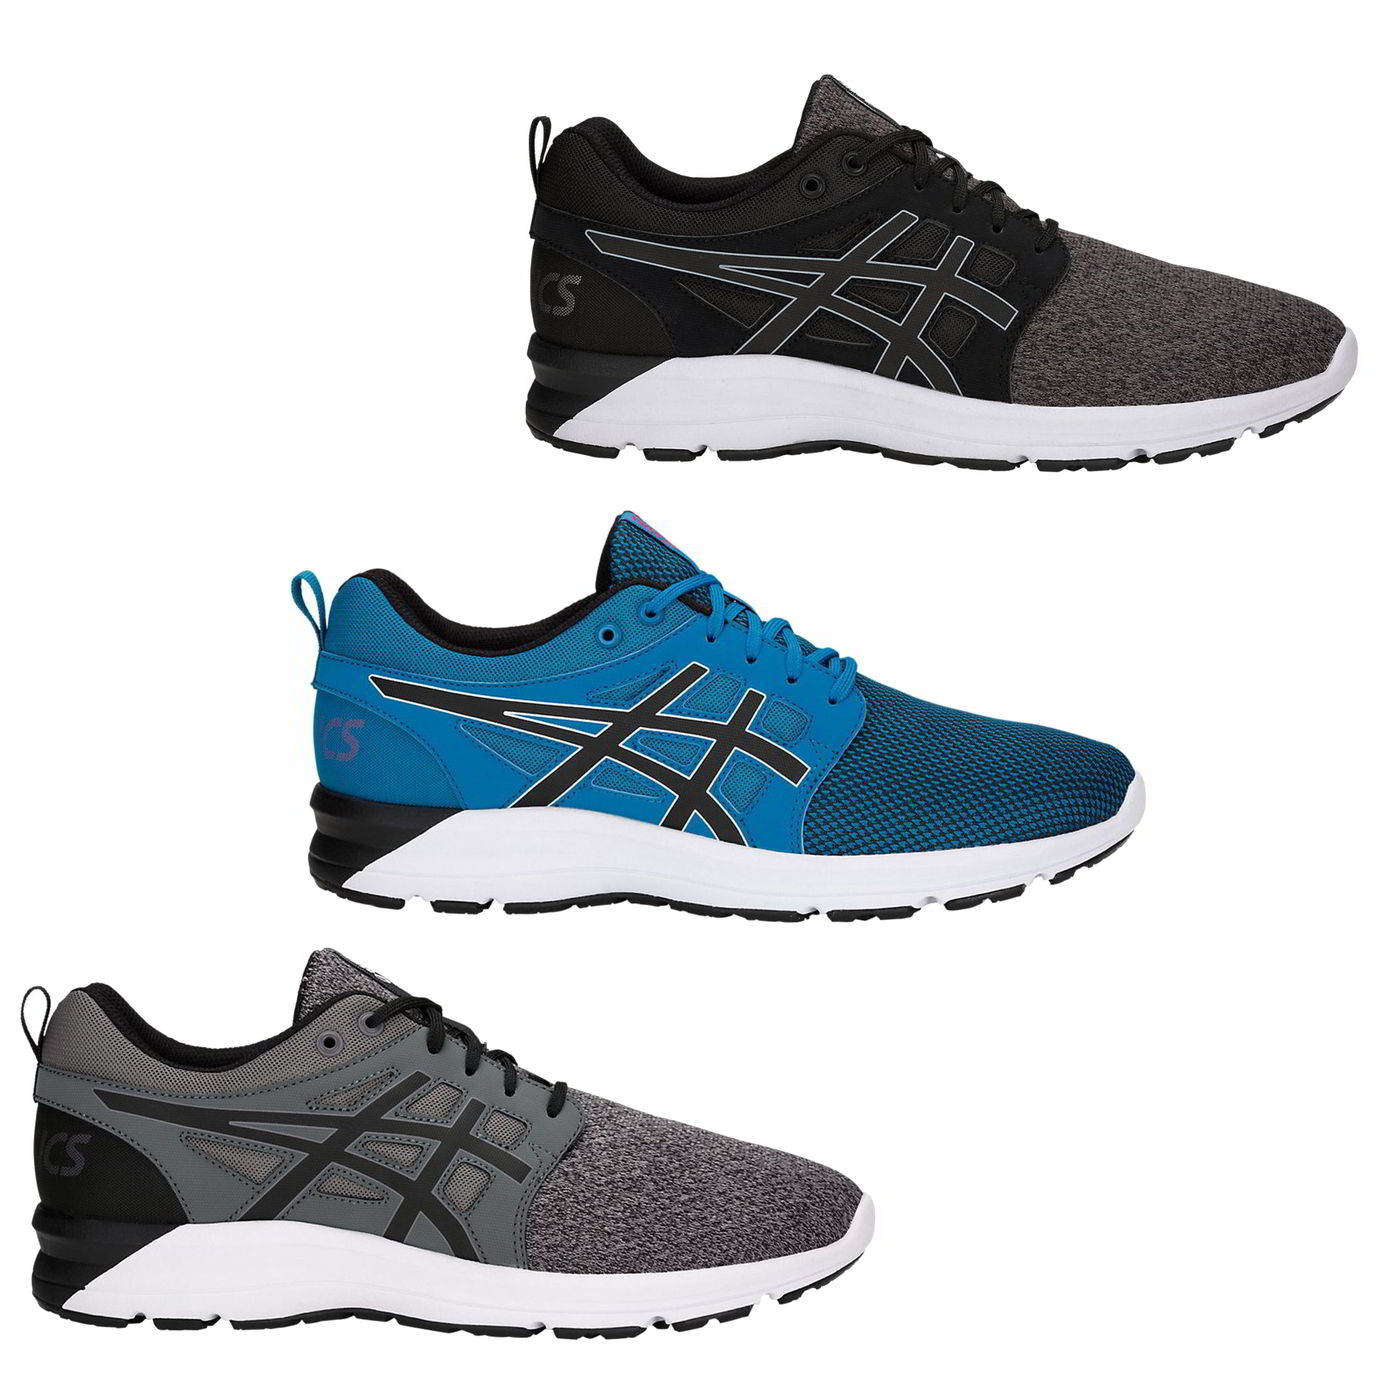 3488aeea Details about Asics Gel Torrance Mens Black Grey Blue Running Shoes  Trainers Size 8-14